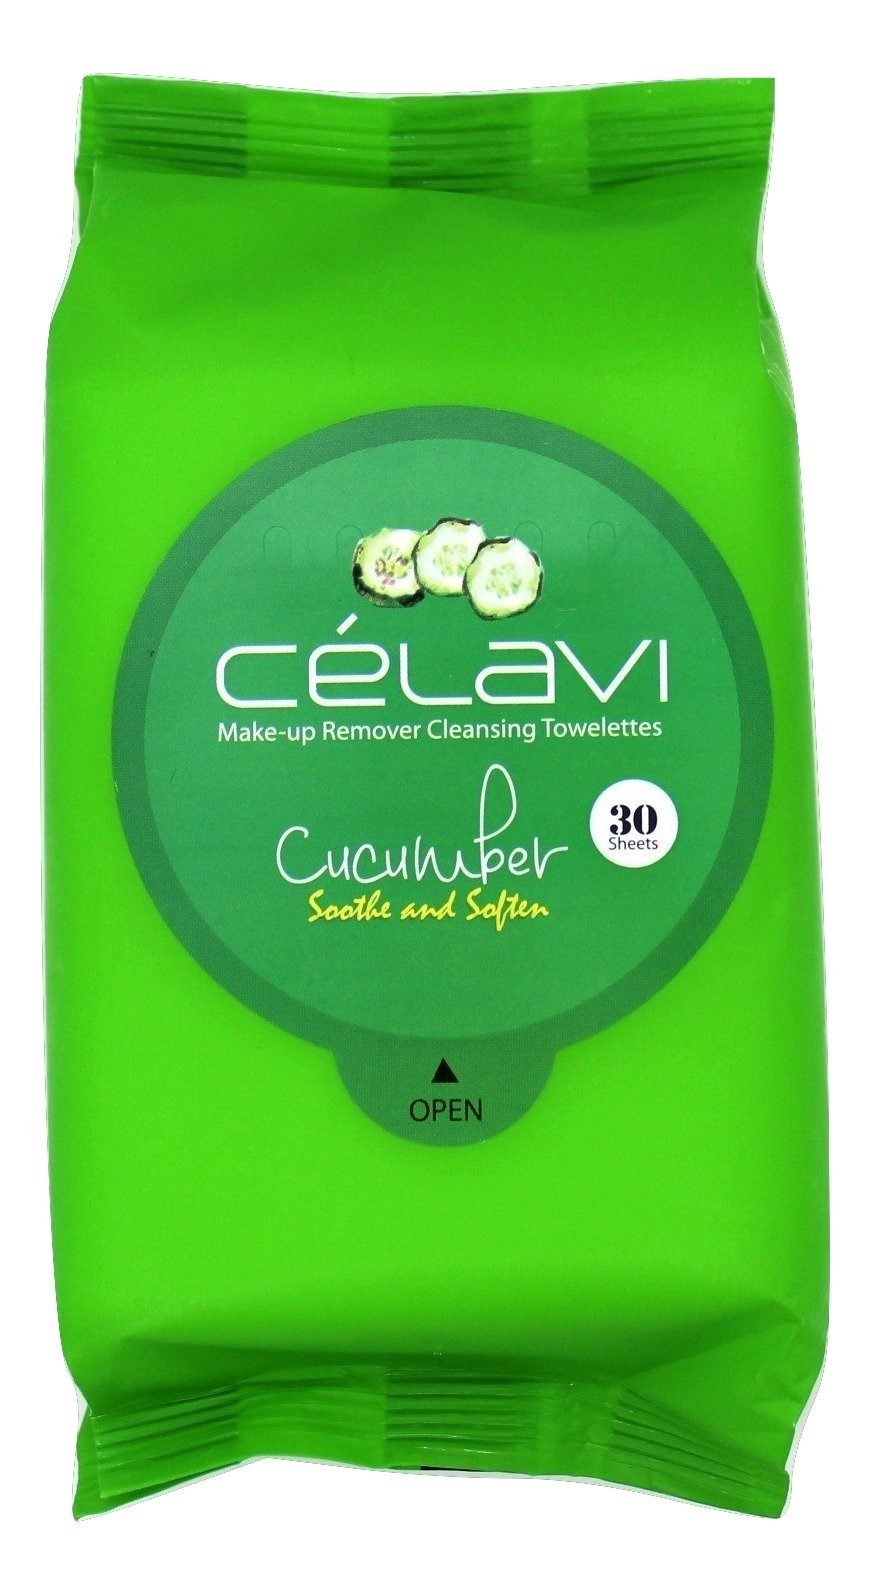 Celavi Makeup Remover Cleansing Wipes Removing Towelettes 2 Packs - 60 Sheets (Cucumber)